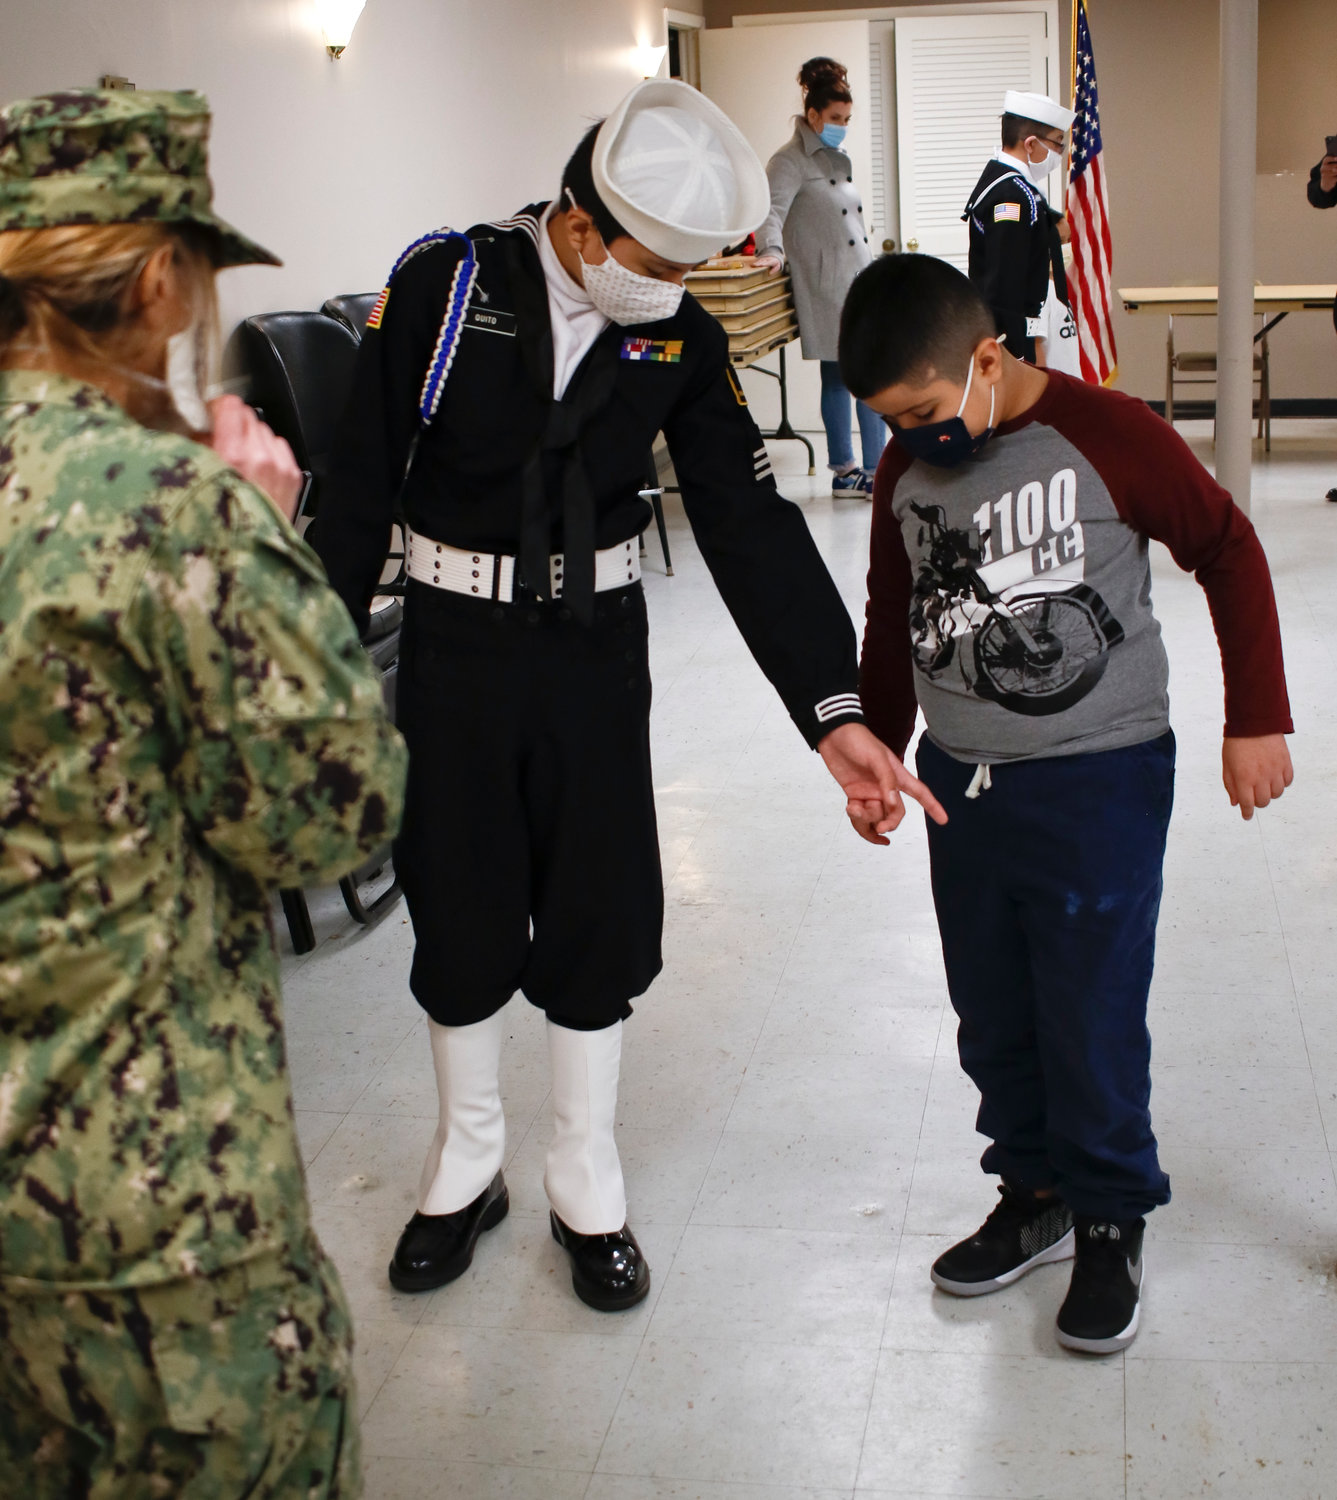 Newest member Joshua Pereira, who attended his first meeting Saturday learned how to do an about-face turn from Jairo QUito and Lt. Cmdr. Samuel.